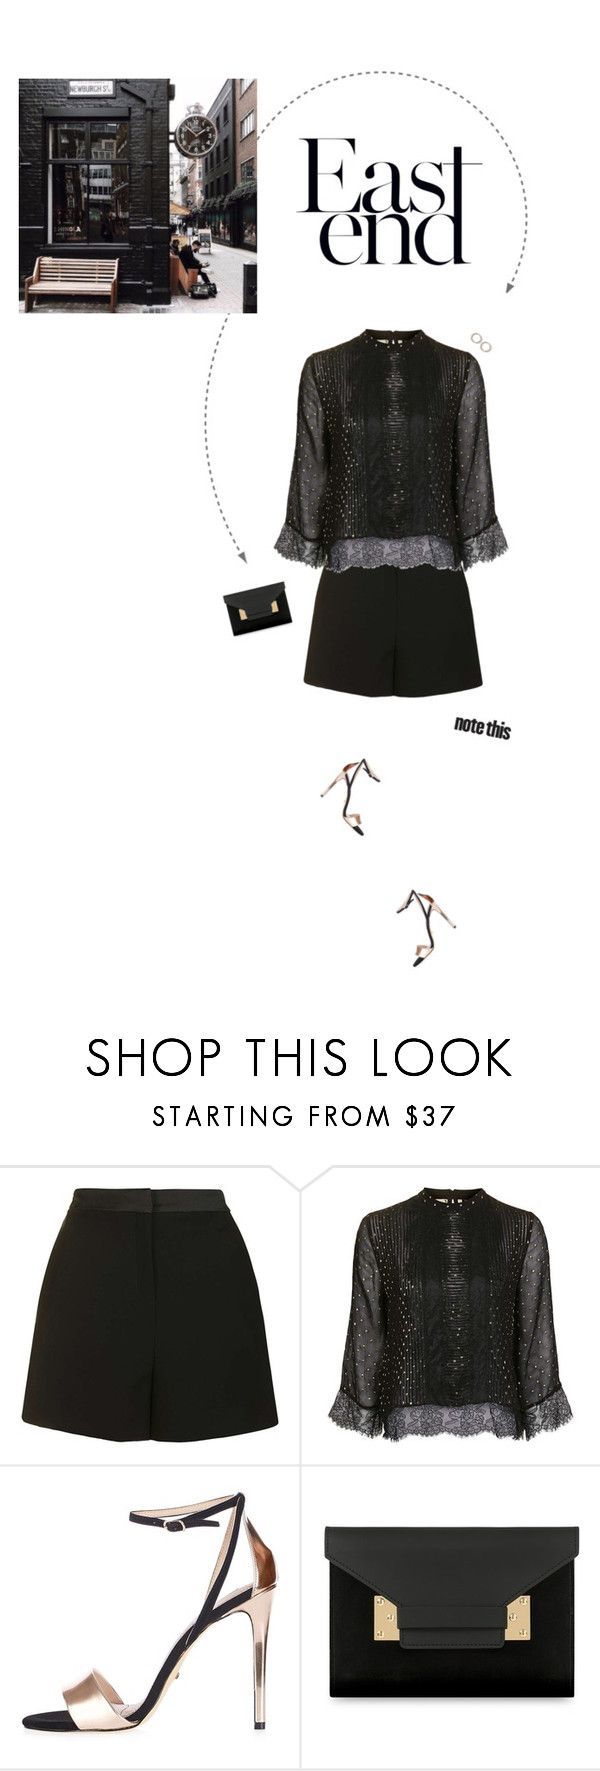 """All Black Outfit."" by xabbielou ❤ liked on Polyvore featuring Topshop and Sophie Hulme"